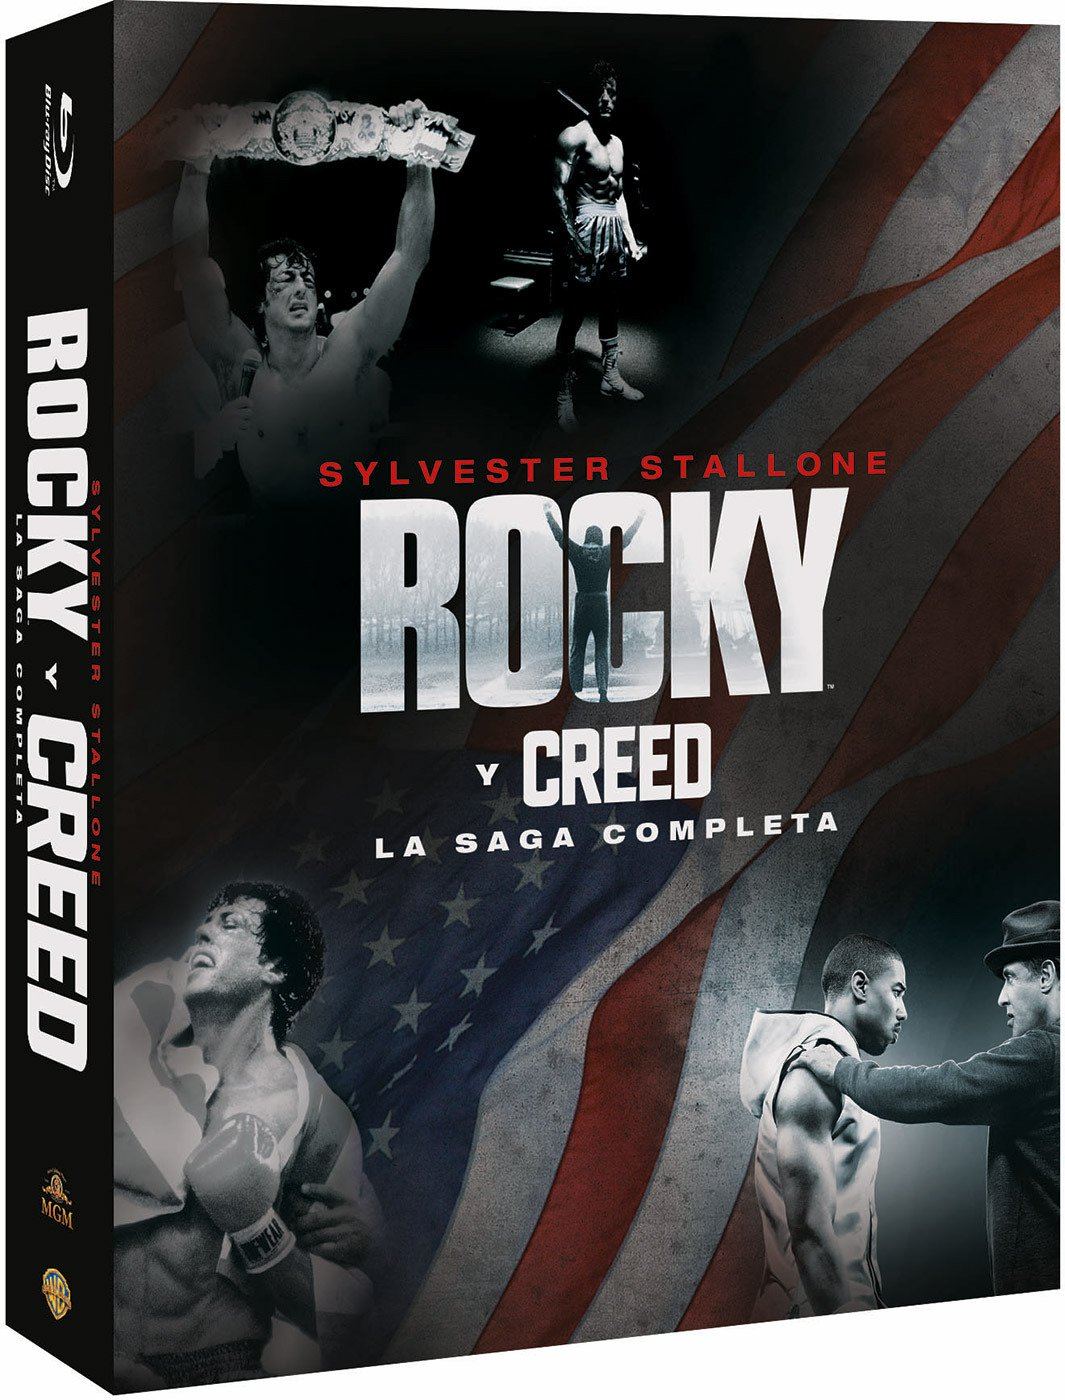 Colección Rocky/Creed Blu-Ray [Blu-ray]: Amazon.es: Sylvester Stallone, Talia Shire, Burt Young, Carl Weathers, Burgess Meredith, Michael Pataki, Rocky Krakoff, Sage Stallone, Angela Boyd, A.J. Benza, Michael B. Jordan, John G. Avildsen, Sylvester